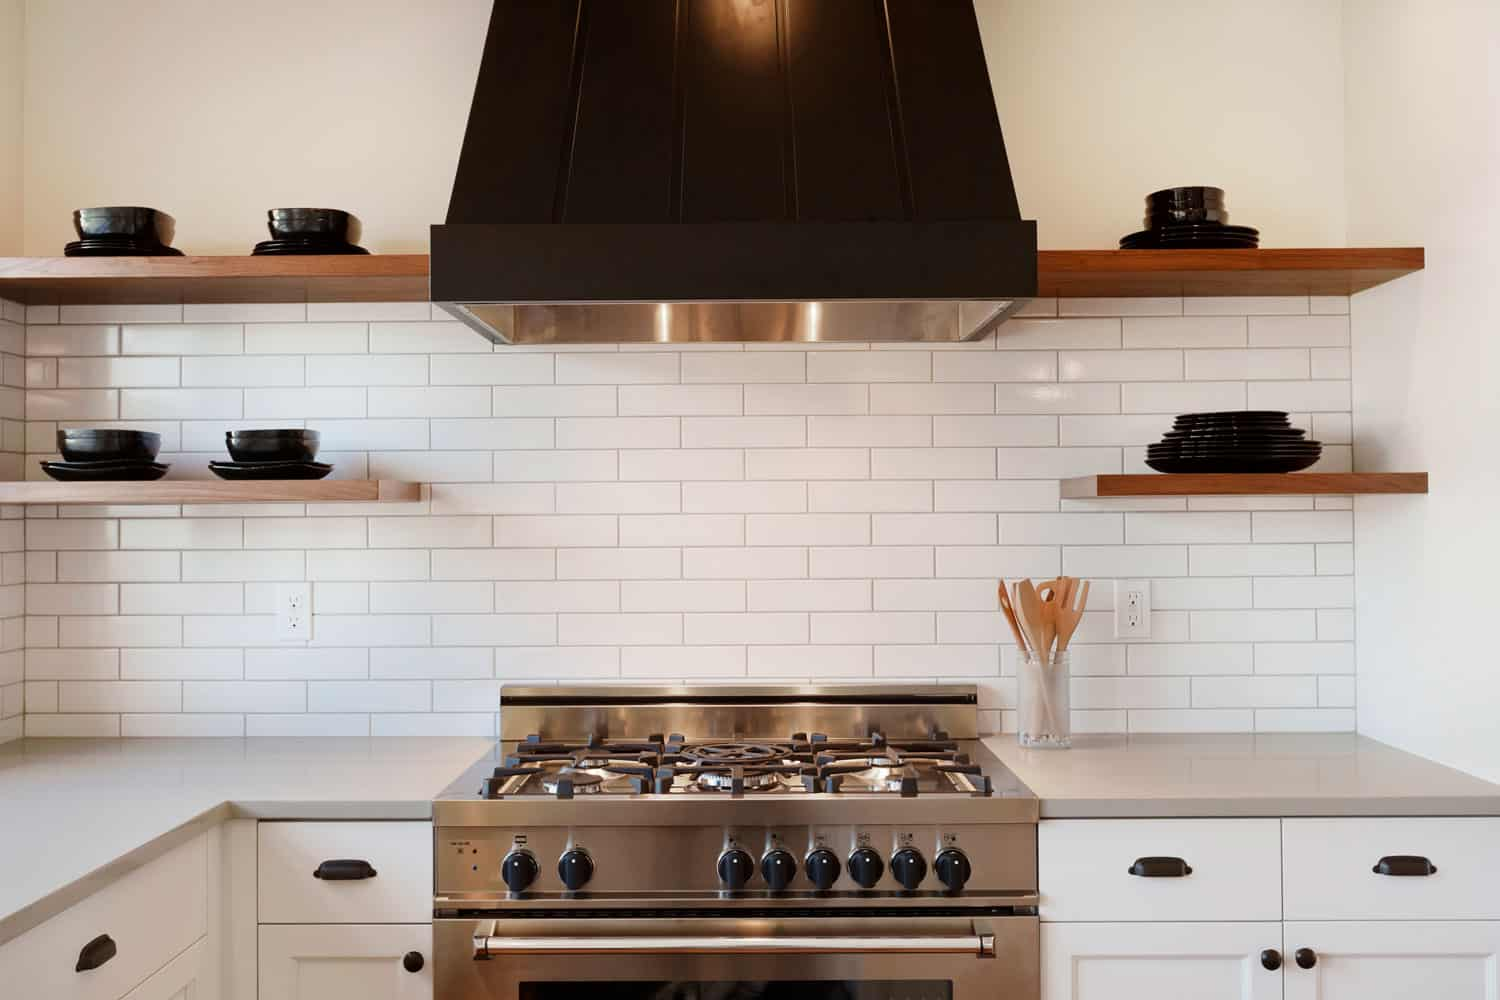 A kitchen stove and hood inside a modern kitchen